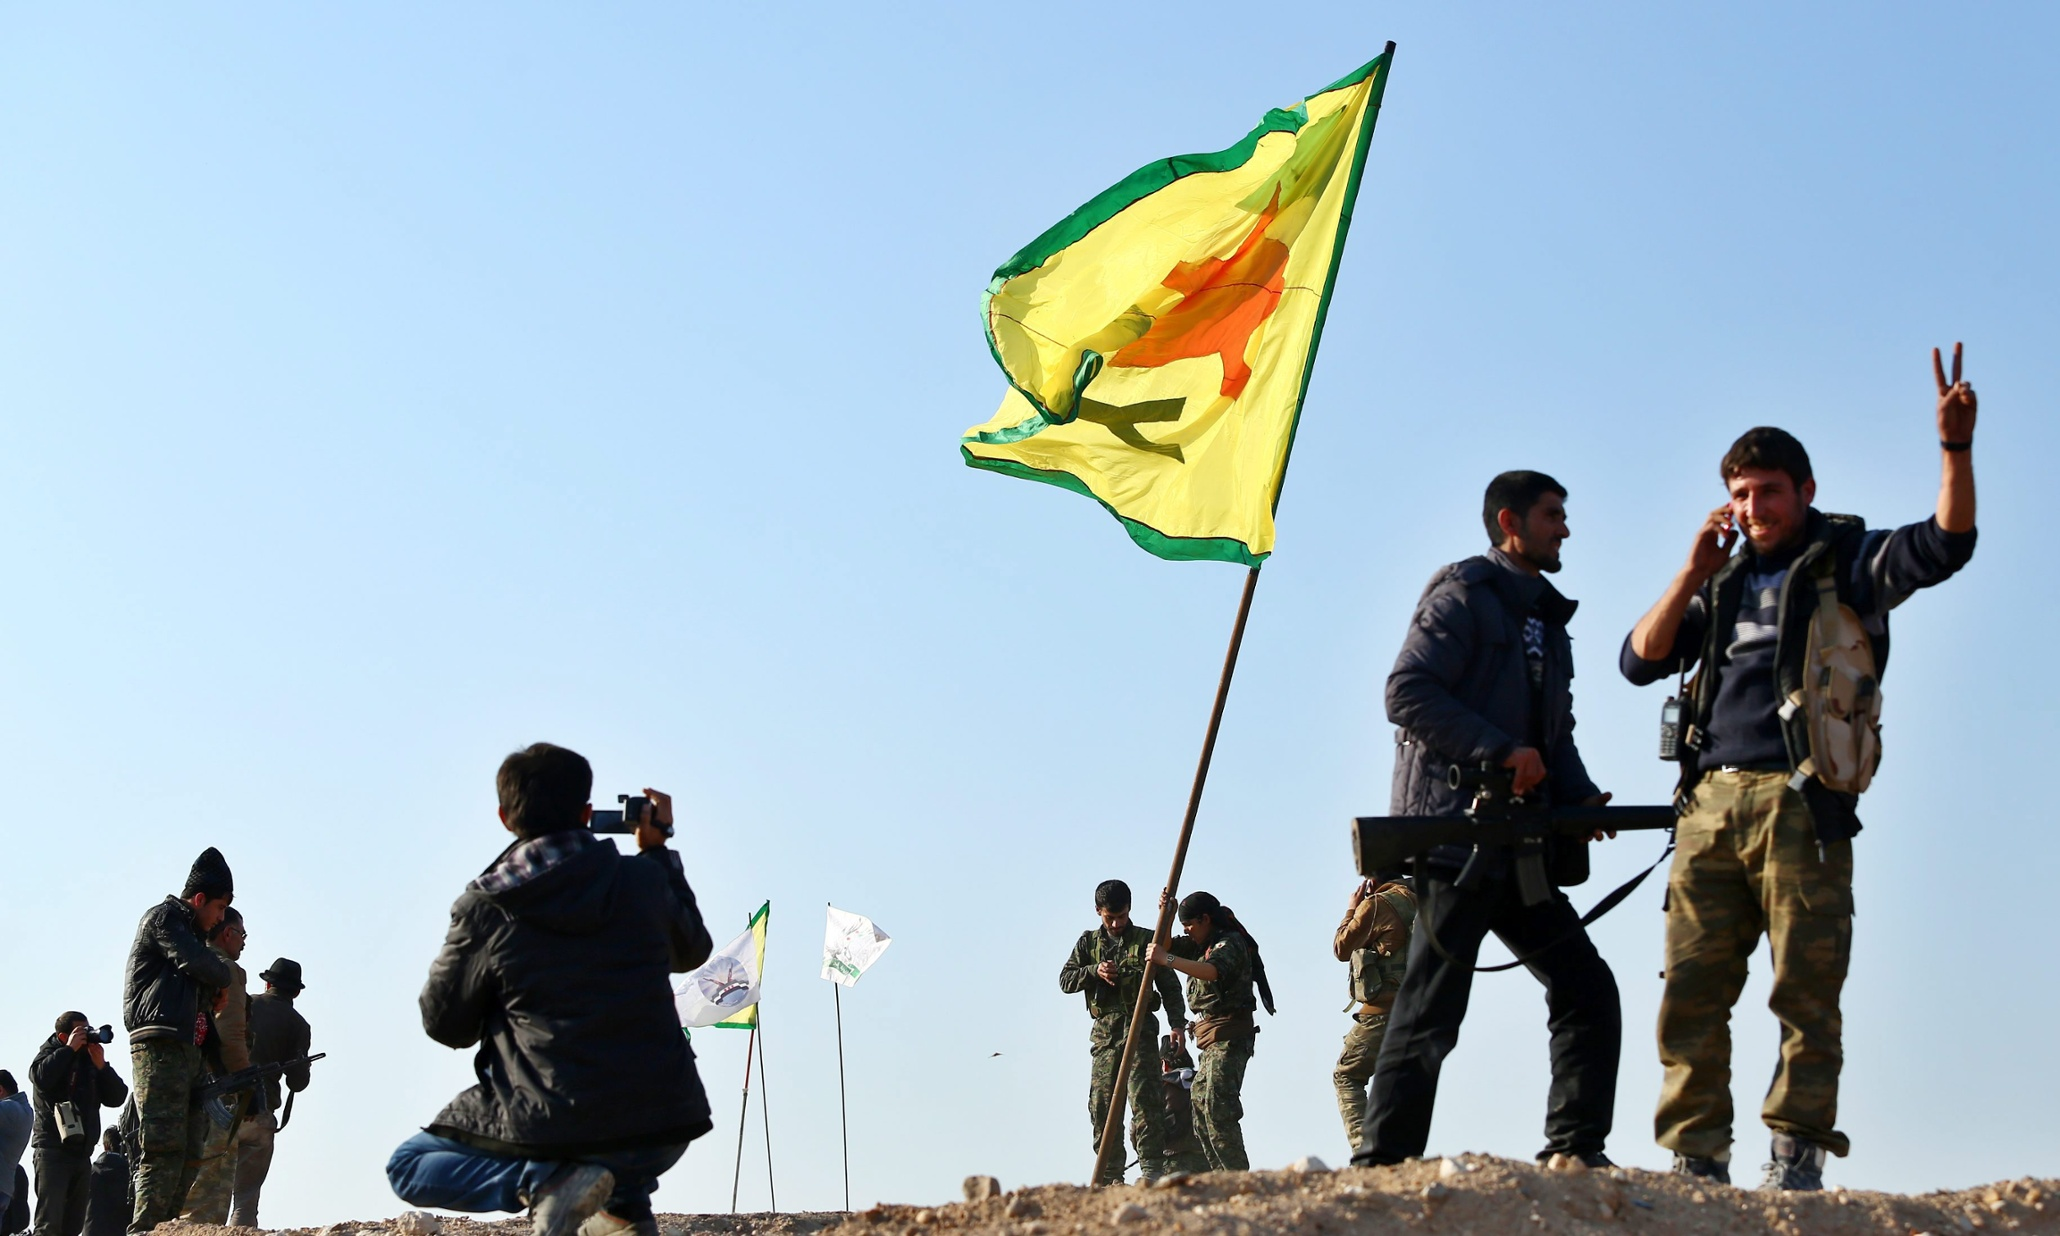 epa04586503 Members of the Syrian Kurdish People's Defence Units (YPG) celebrate their victory in Kobane, Syria, 26 January 2015. According to reports Kurdish fighters claim to have pushed militants from the group calling themselves Islamic State (IS) out of the whole of Kobane following four months of fighting, supported by airstrikes carried out by an international anti-IS coalition, though a number of the town's surrounding villages, close to the Syrian-Turkish border, remain in the hands of IS.  EPA/STR